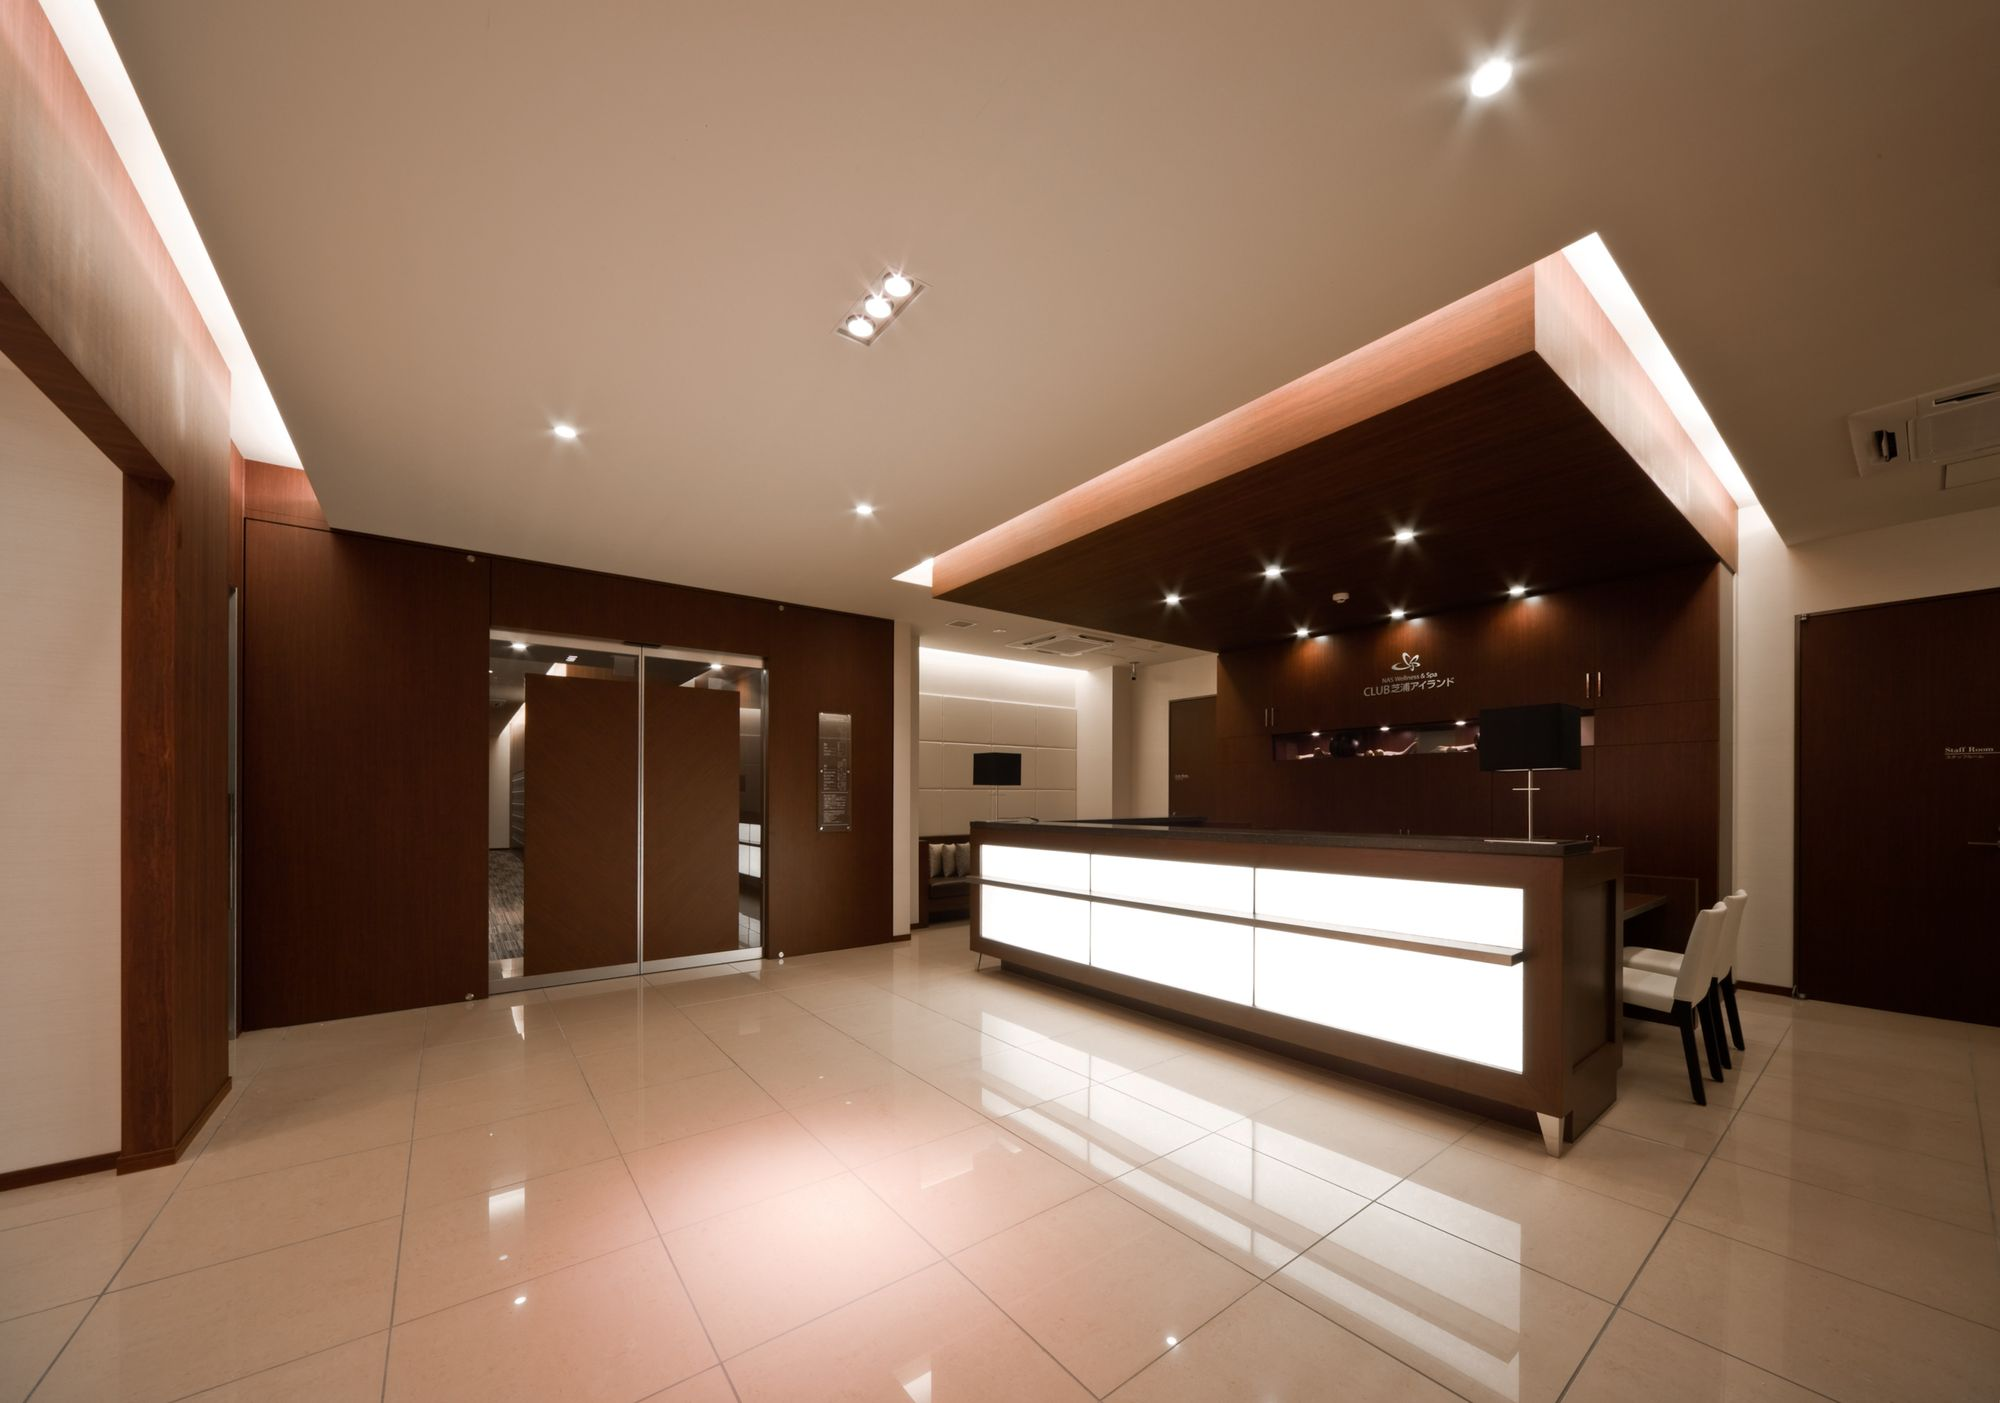 Reception front desk